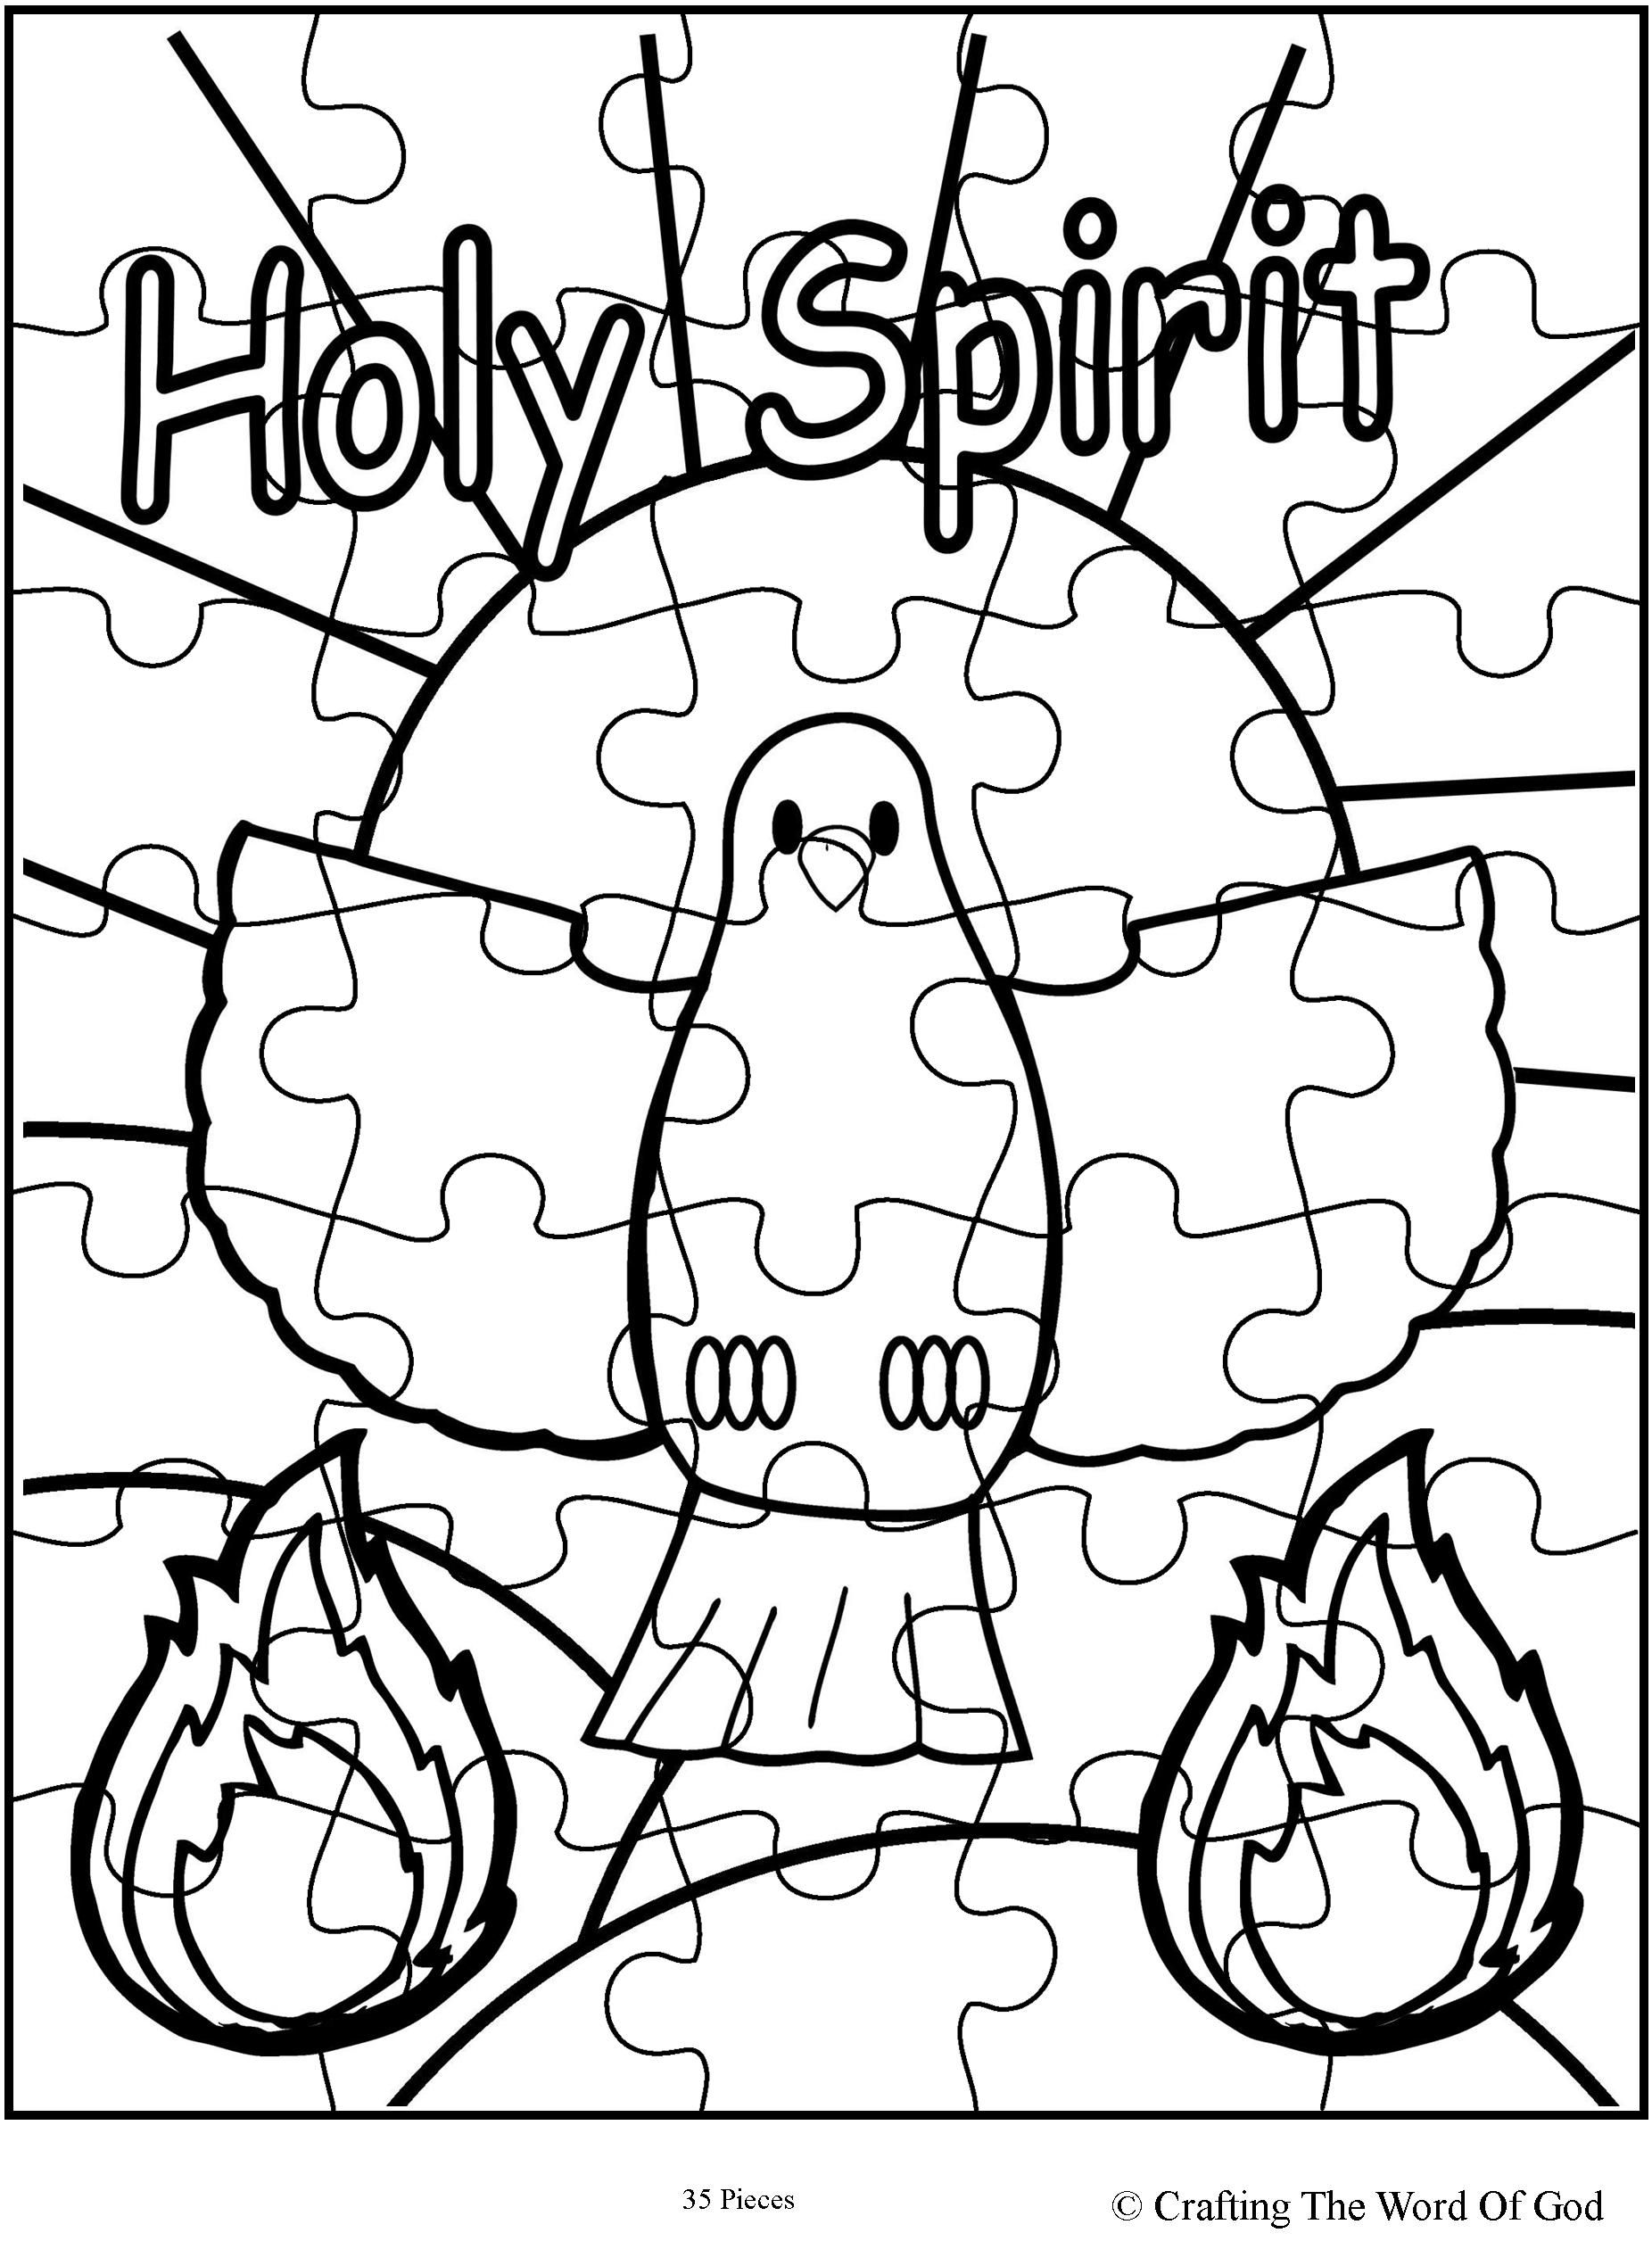 Holy Spirit Puzzle Activity Sheet